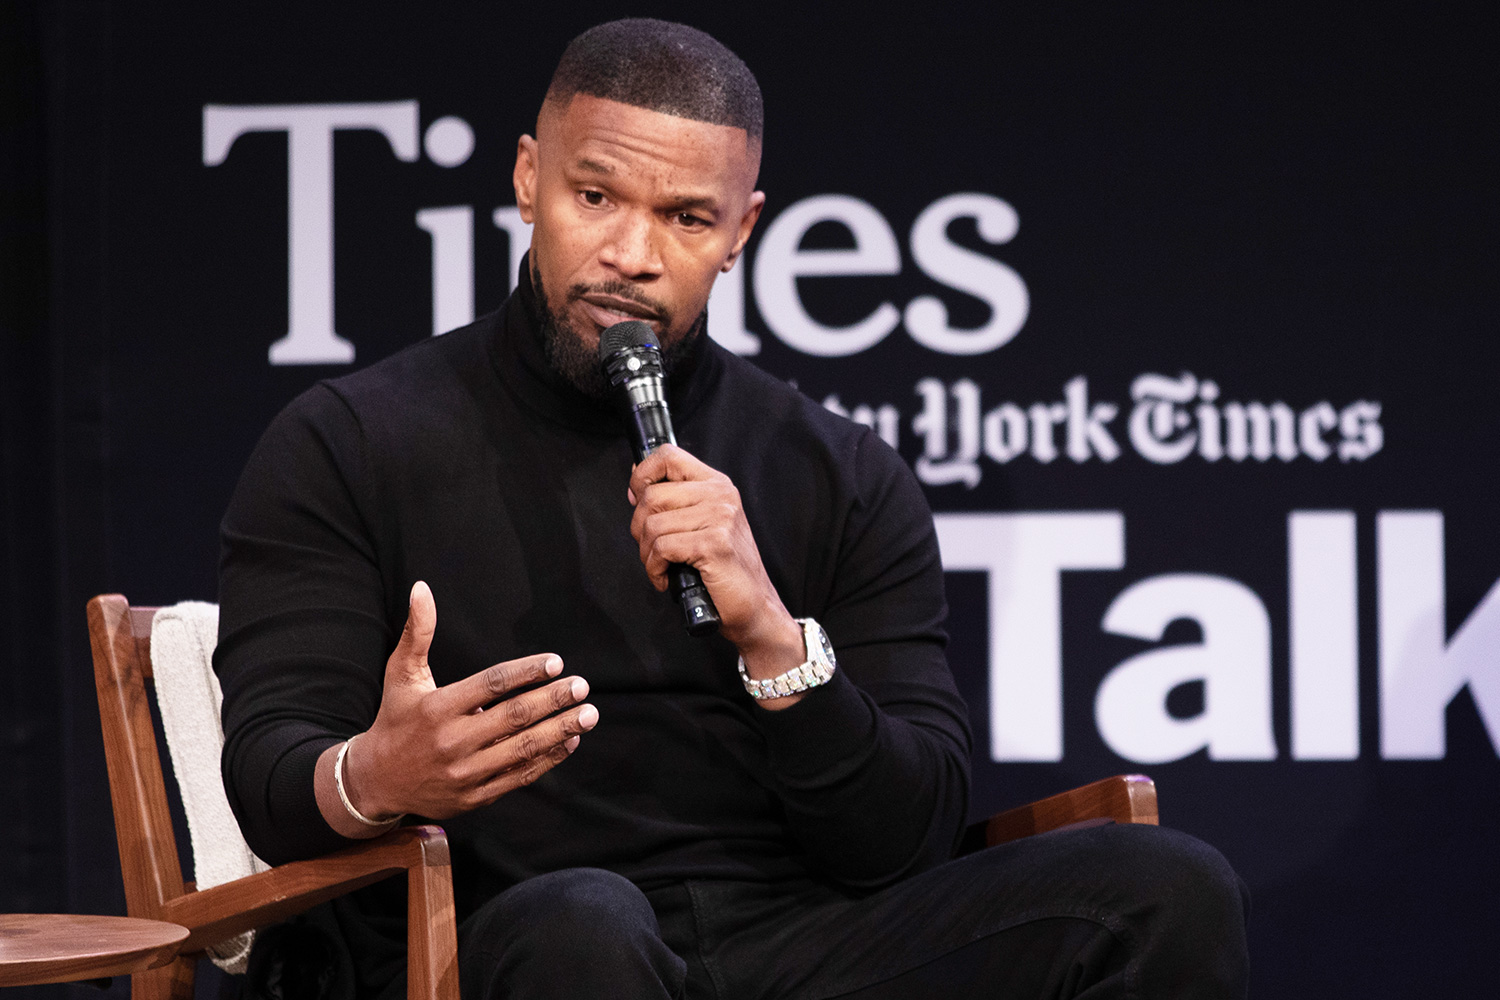 """Jamie Foxx speaks at The New York Times Presents ScreenTimes: """"Just Mercy"""" with Michael B. Jordan, Jamie Foxx and Bryan Stevenson, The Times Center, NYC December 16, 2019"""